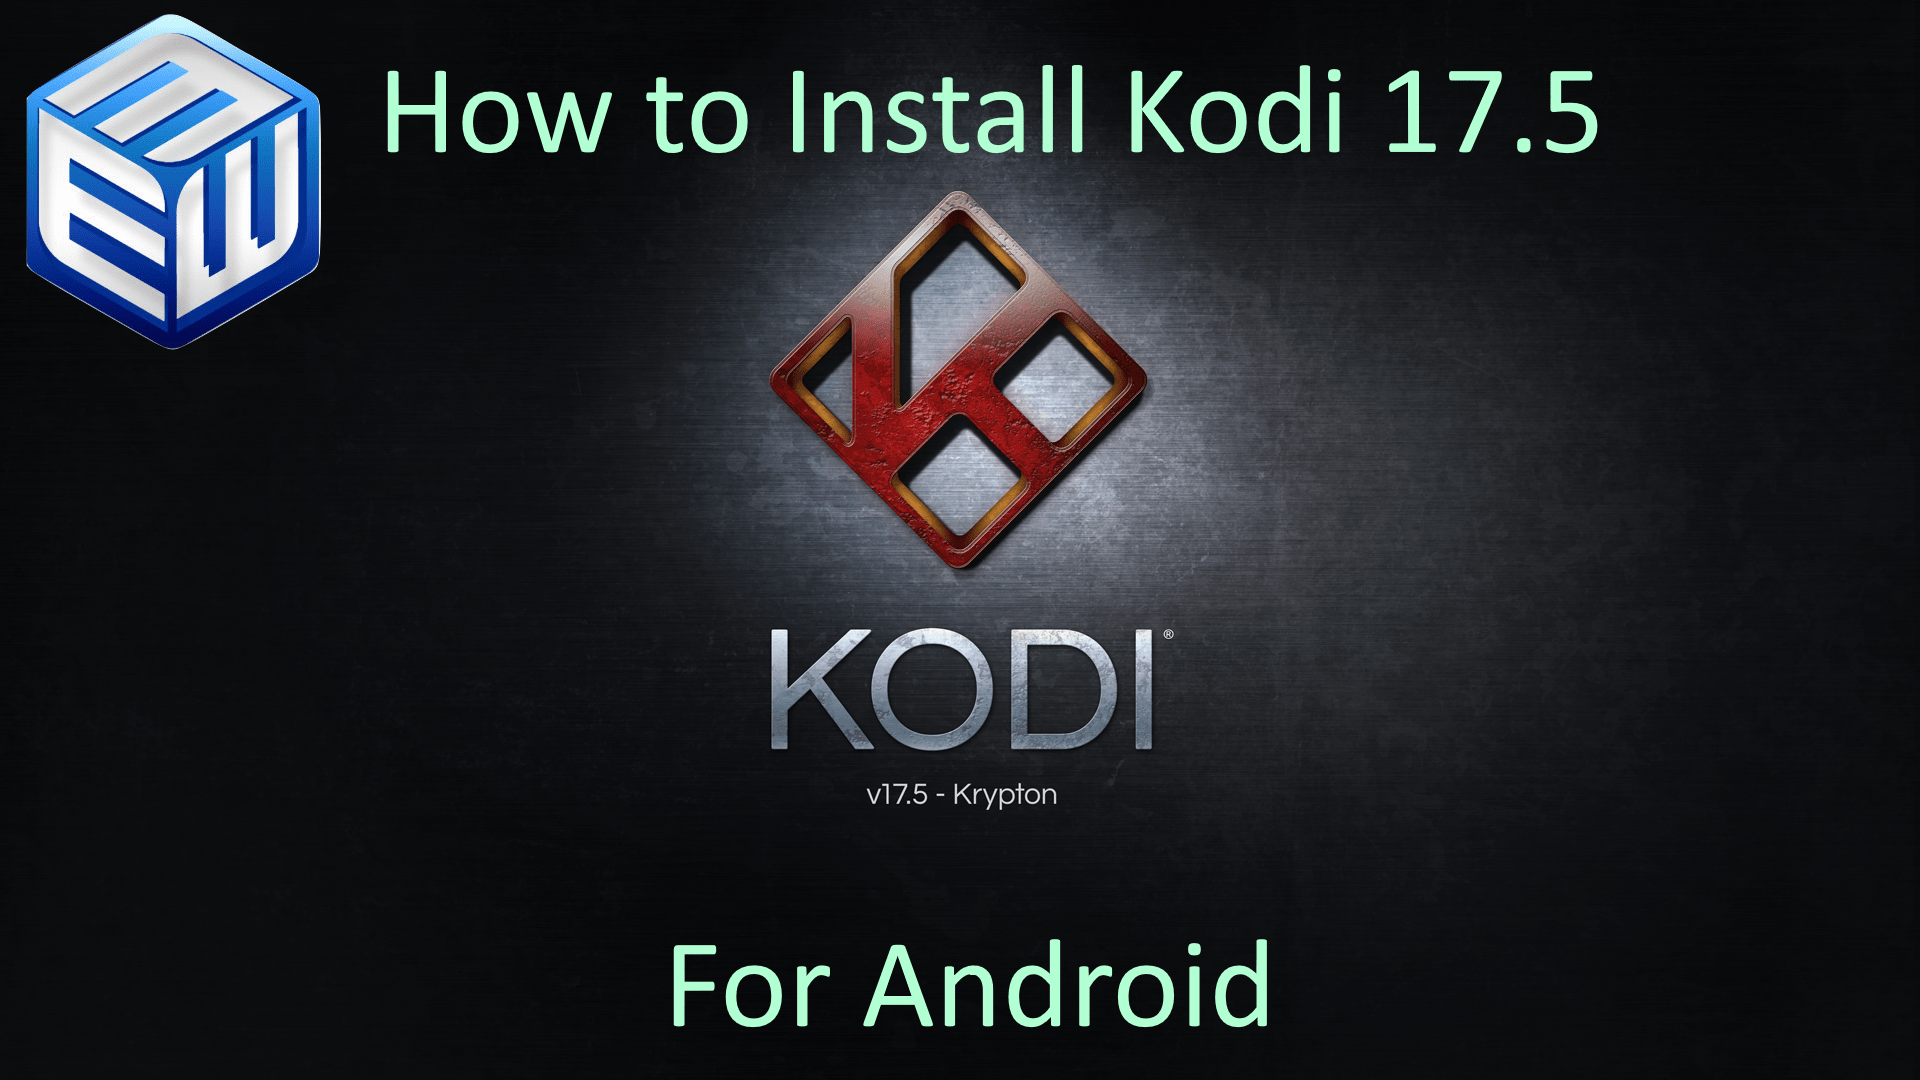 How to install Kodi 17.5.1 for Android